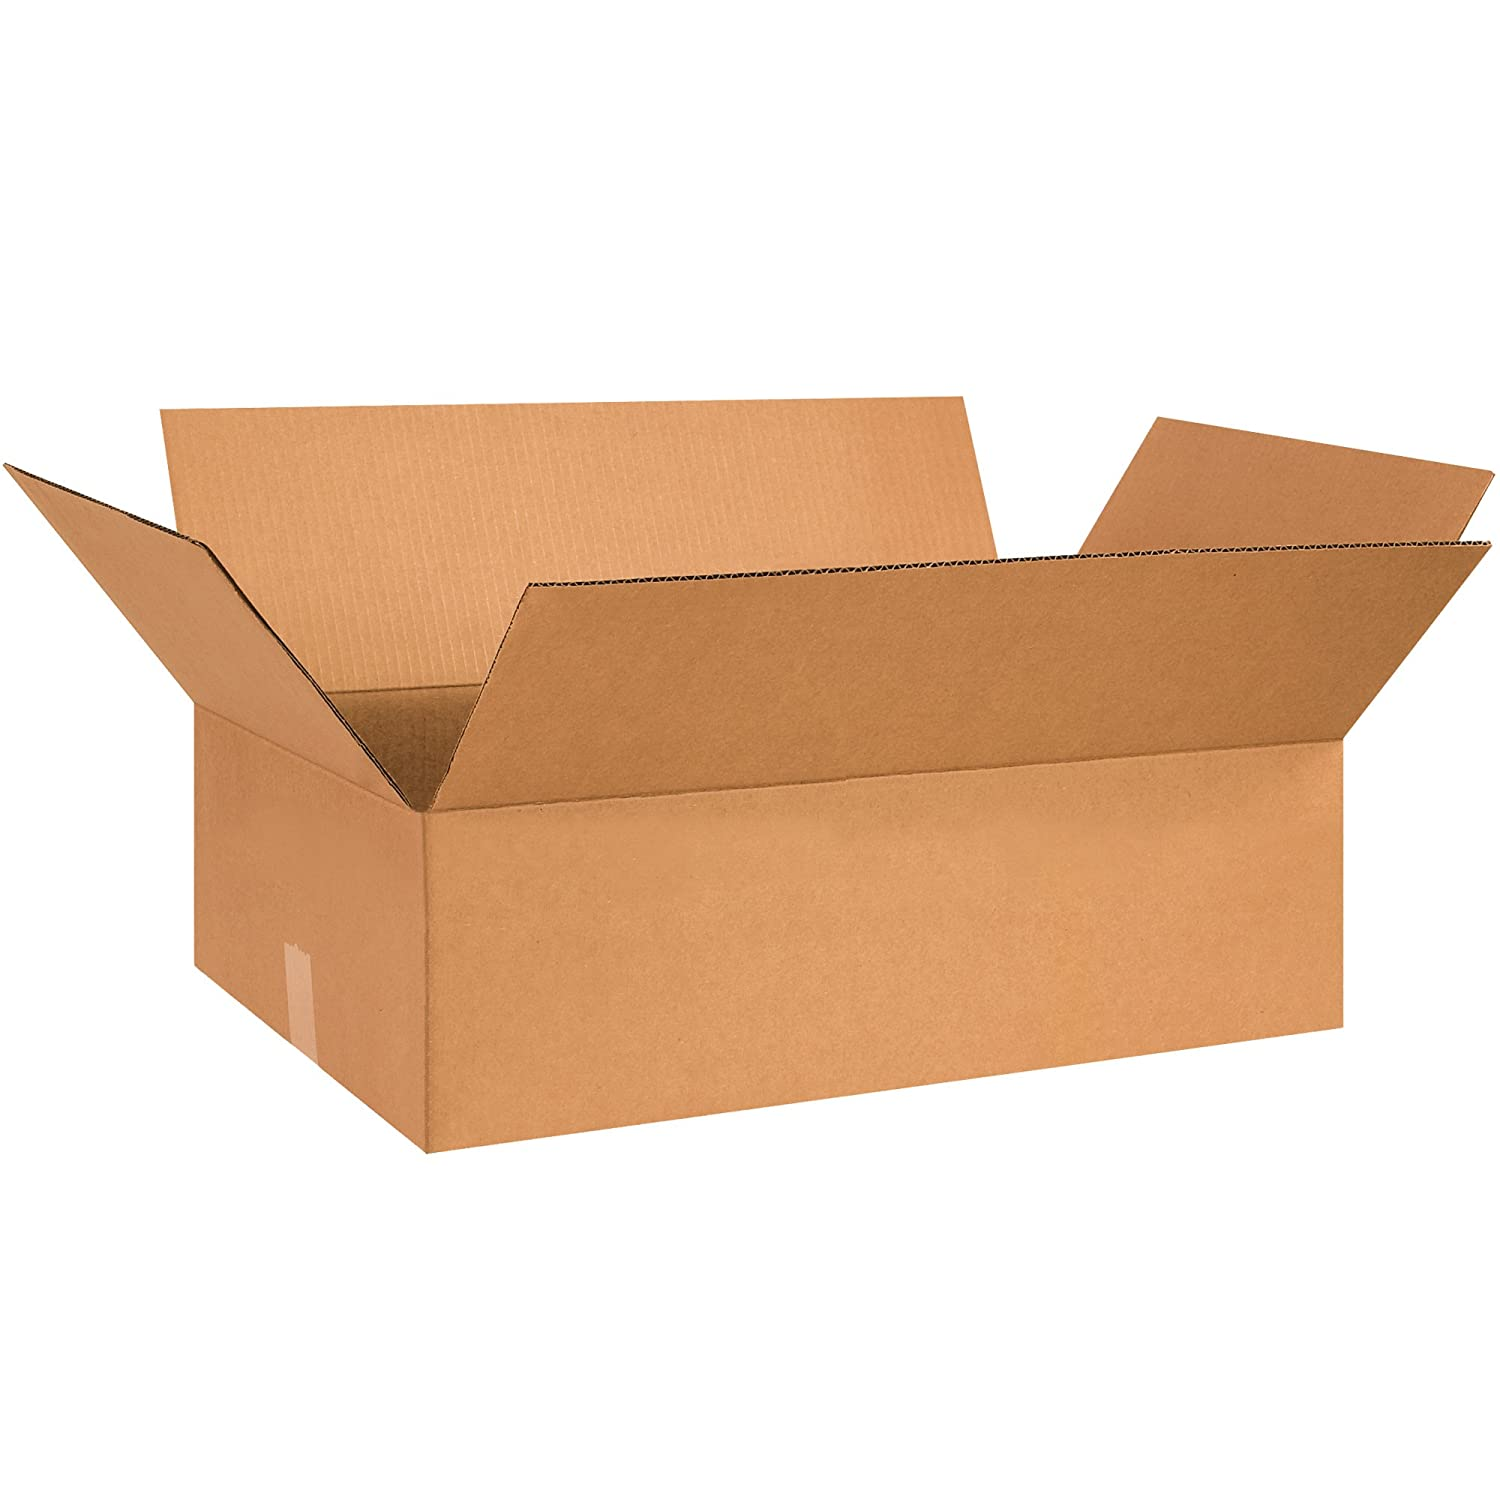 Import Boxes Max 79% OFF Fast BF26155 Corrugated Cardboard 26